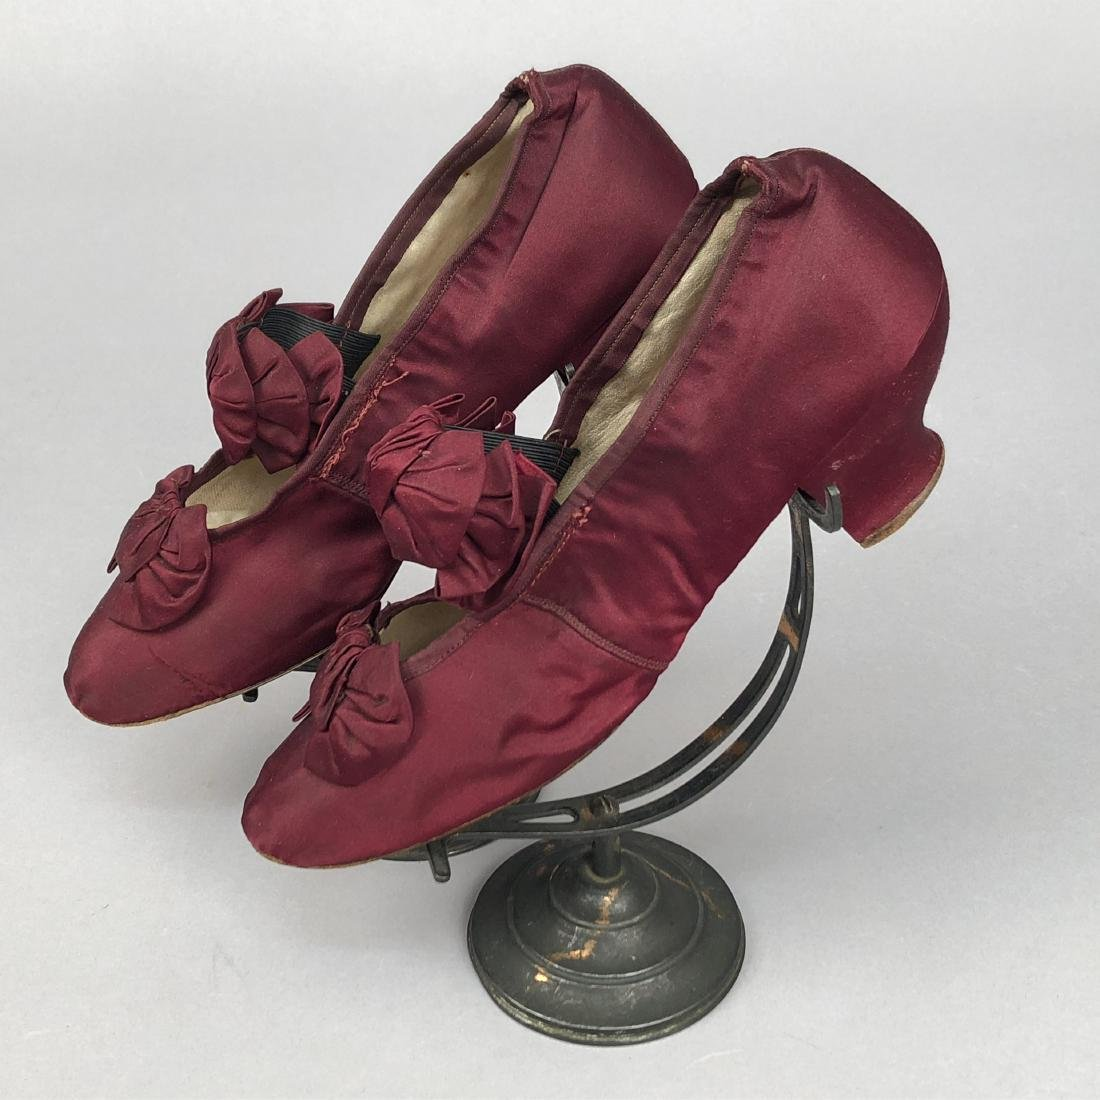 THREE PAIR LOW HEELED PUMPS with BOW VAMP, 1880s -1890s - 2